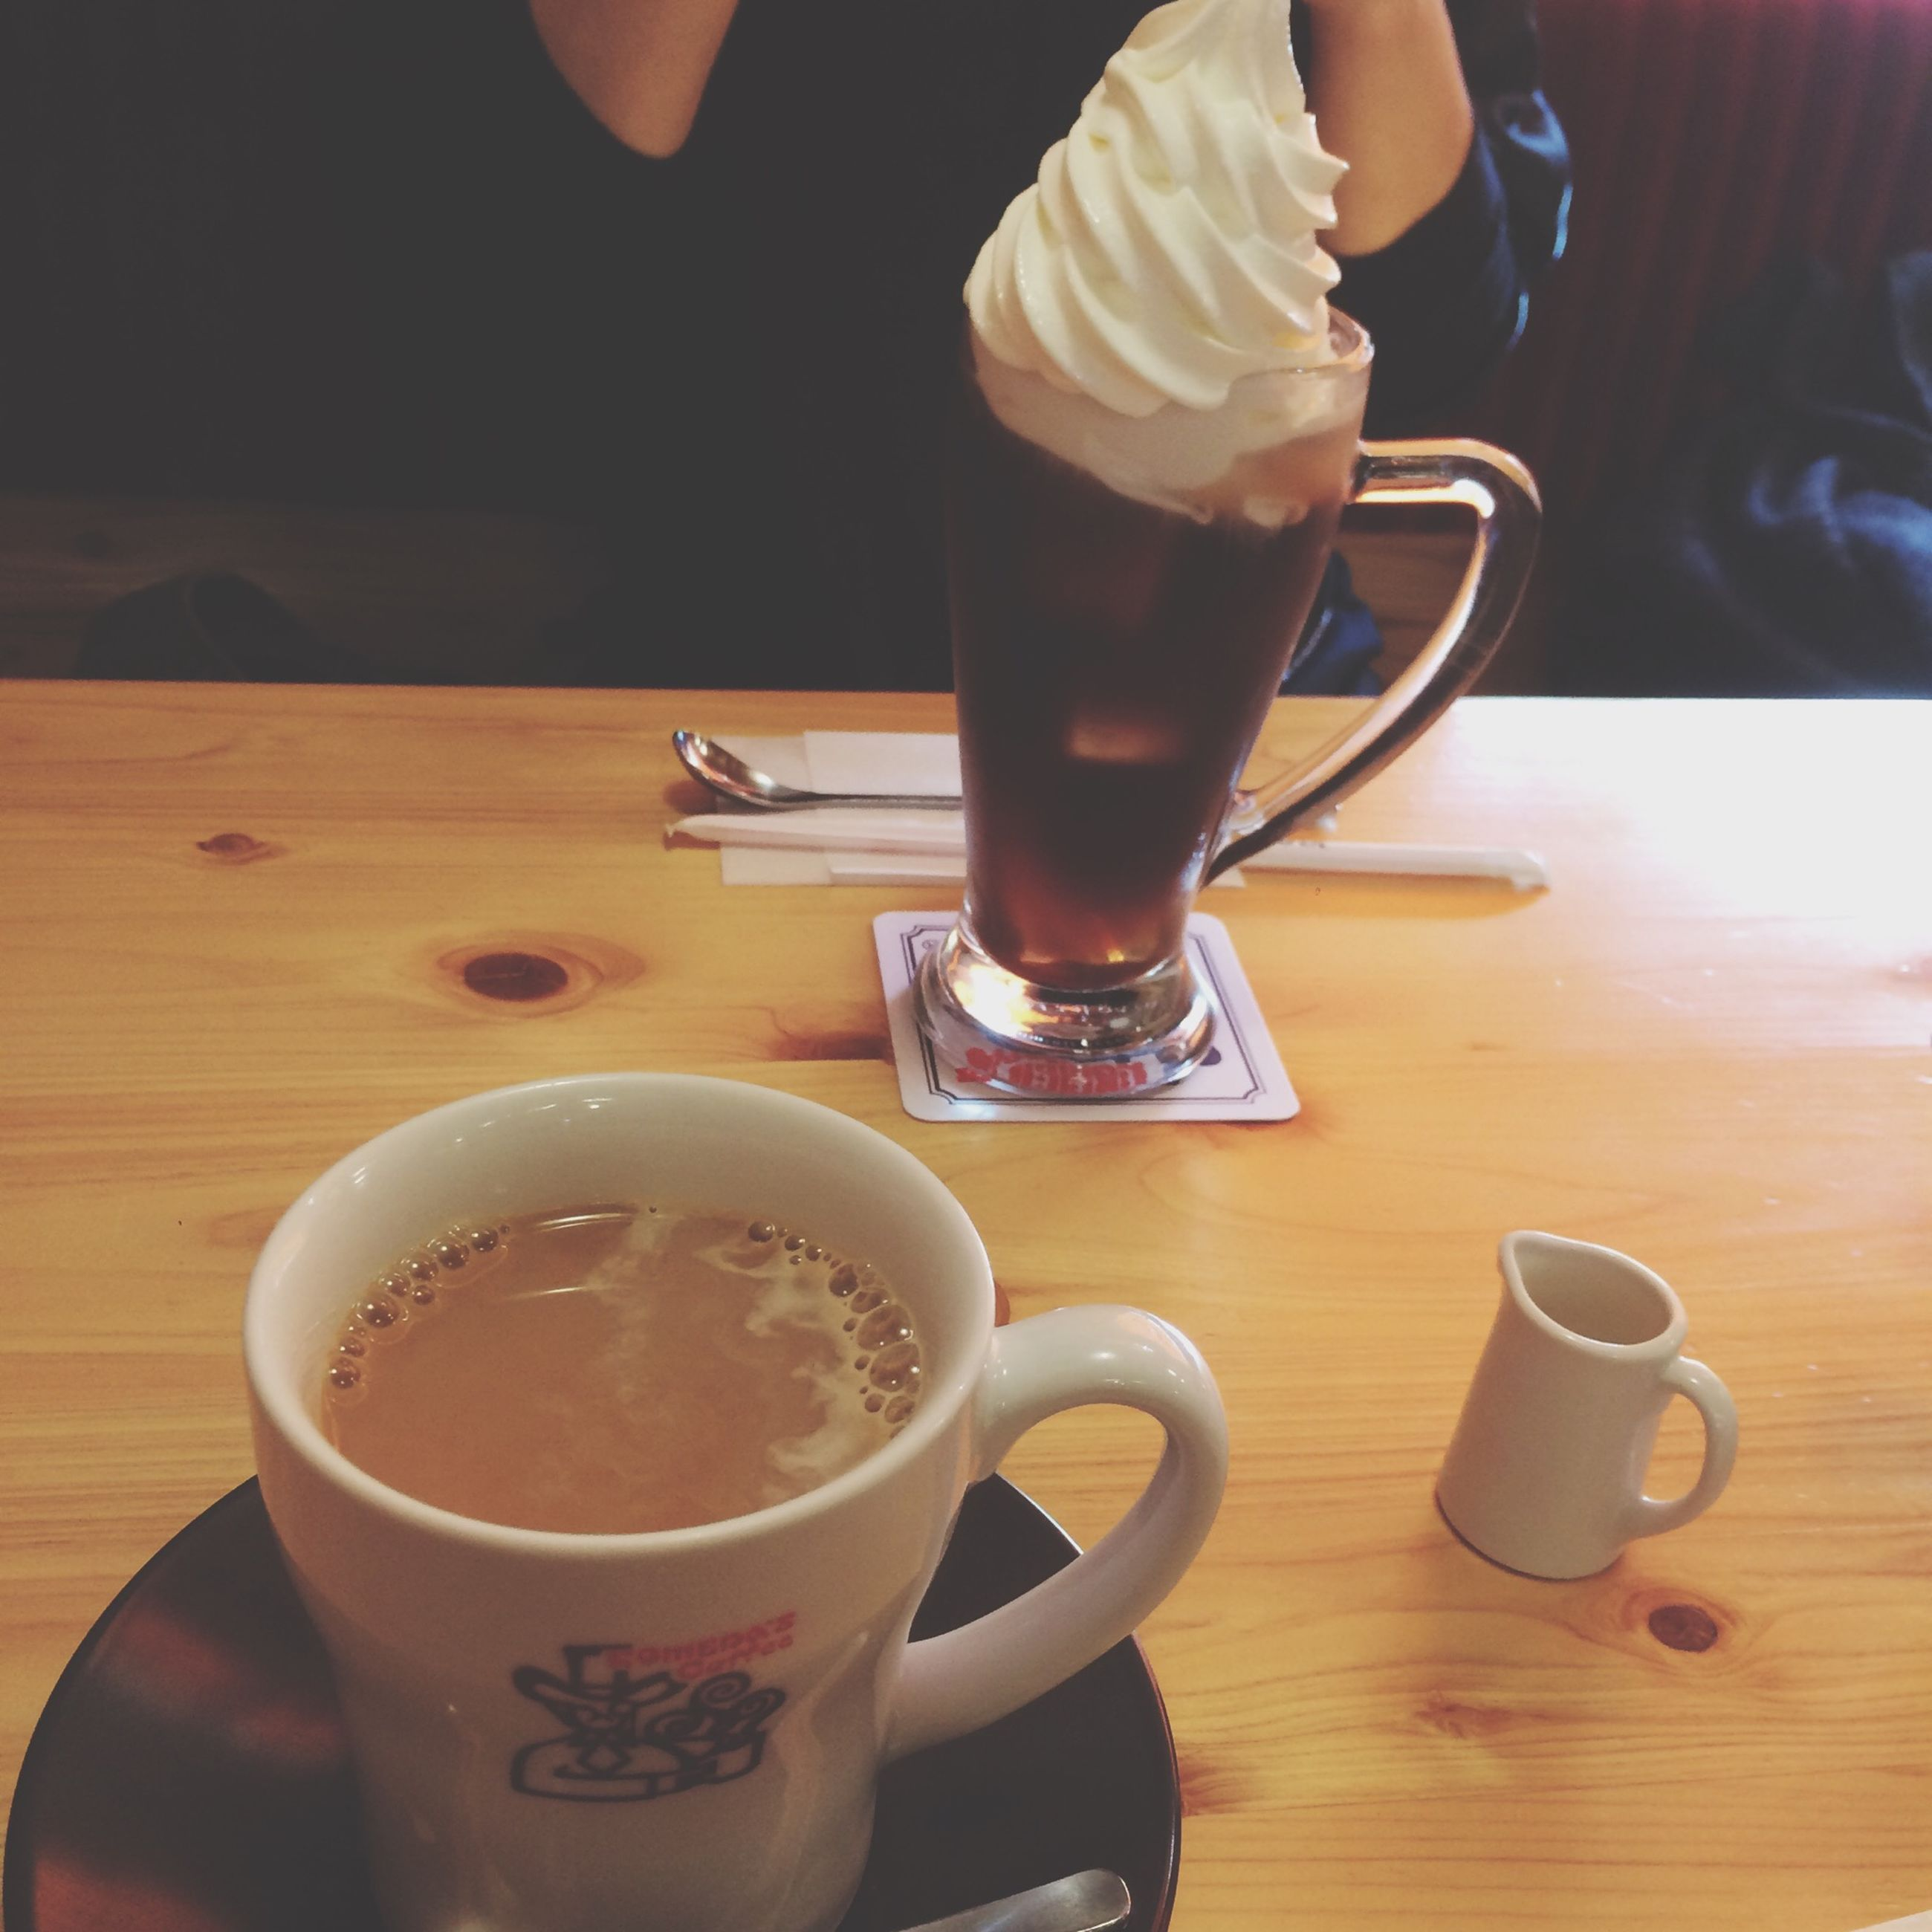 drink, food and drink, refreshment, table, coffee cup, indoors, coffee - drink, freshness, coffee, lifestyles, frothy drink, drinking glass, cup, person, leisure activity, close-up, saucer